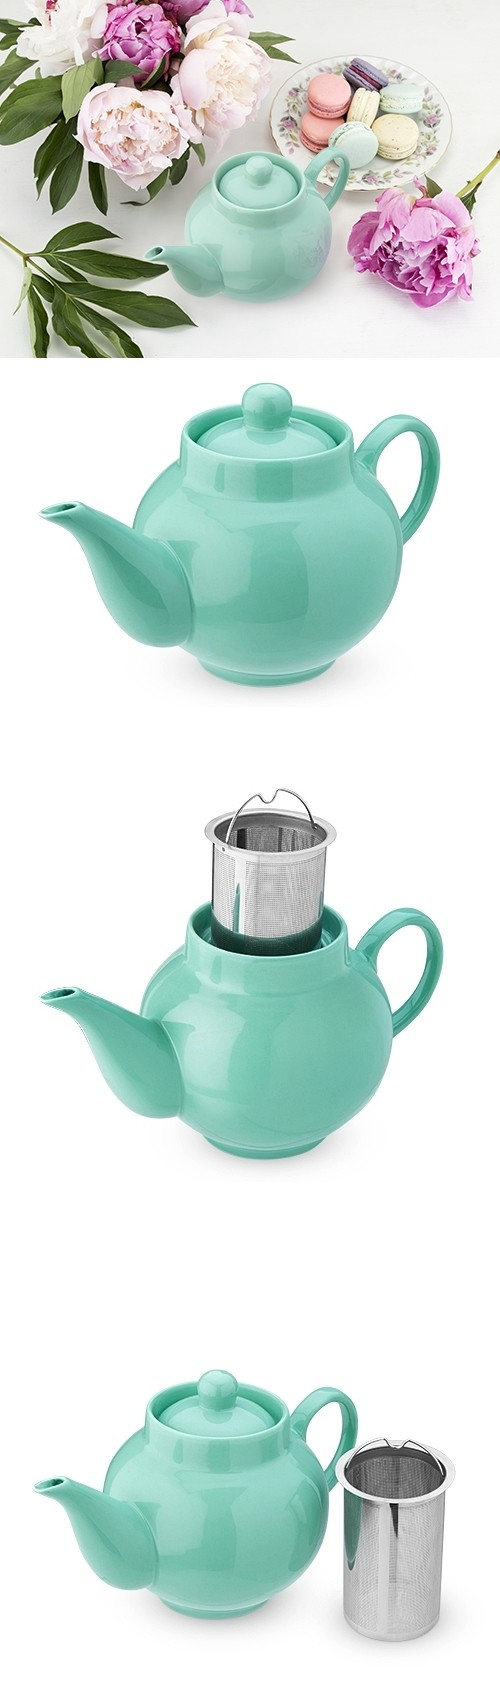 Regan Green Ceramic Teapot & Infuser by Pinky Up